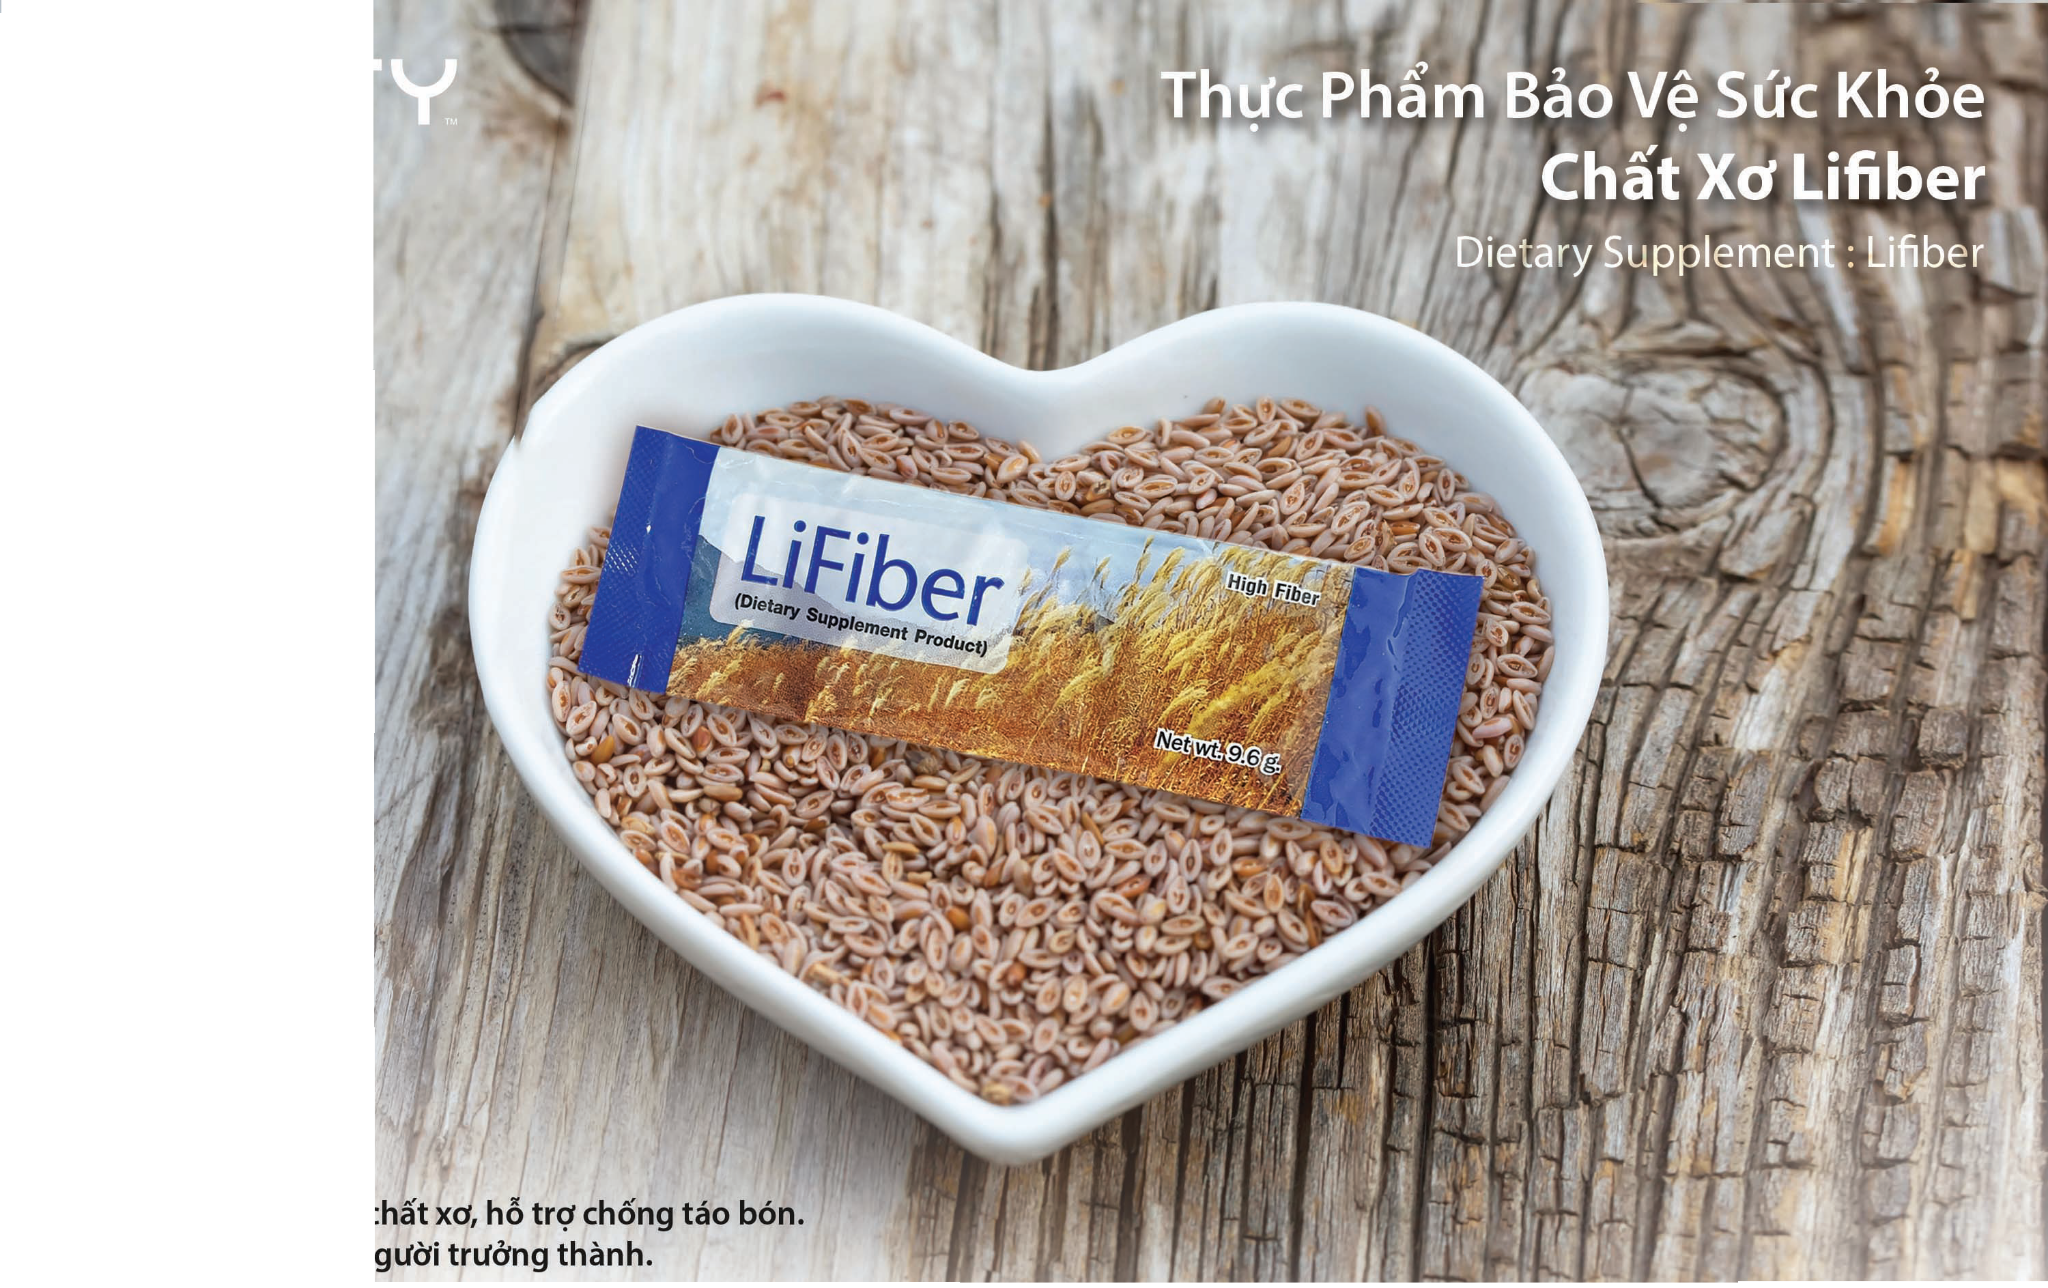 Chất Xơ LiFiber (Dietary Supplement: LiFiber)